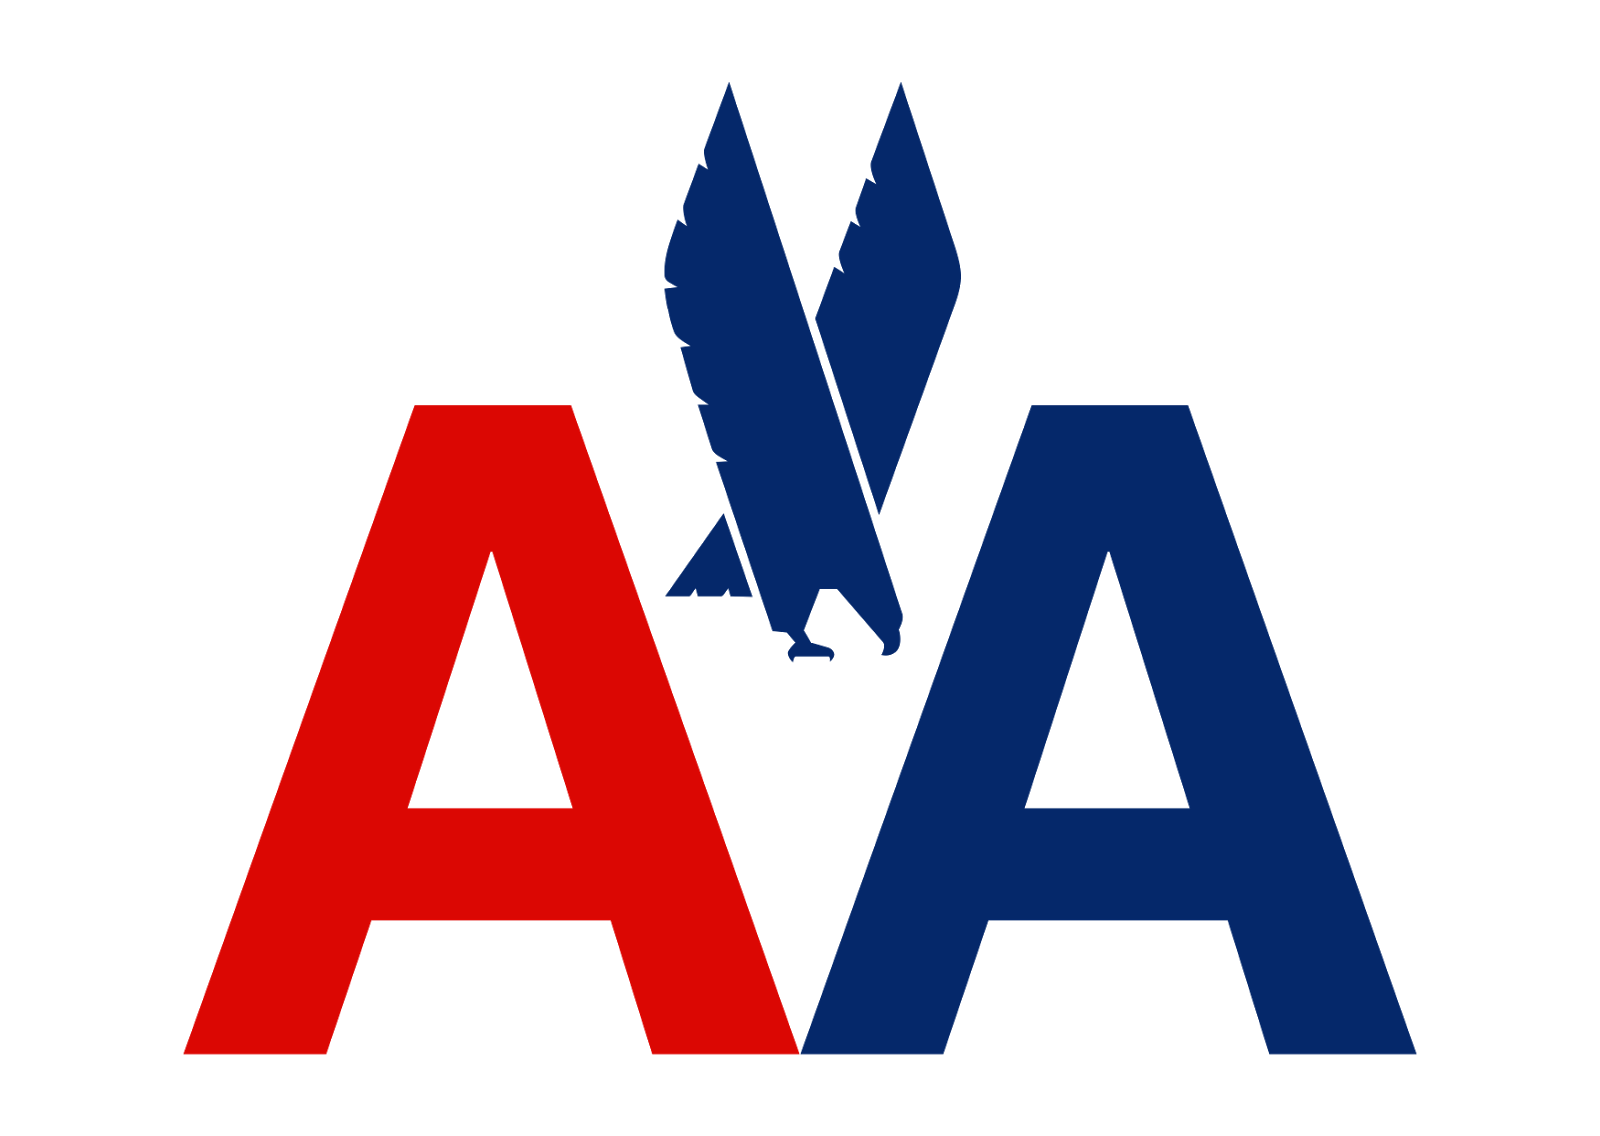 AA American Airlines Logo Vector - American Airlines PNG